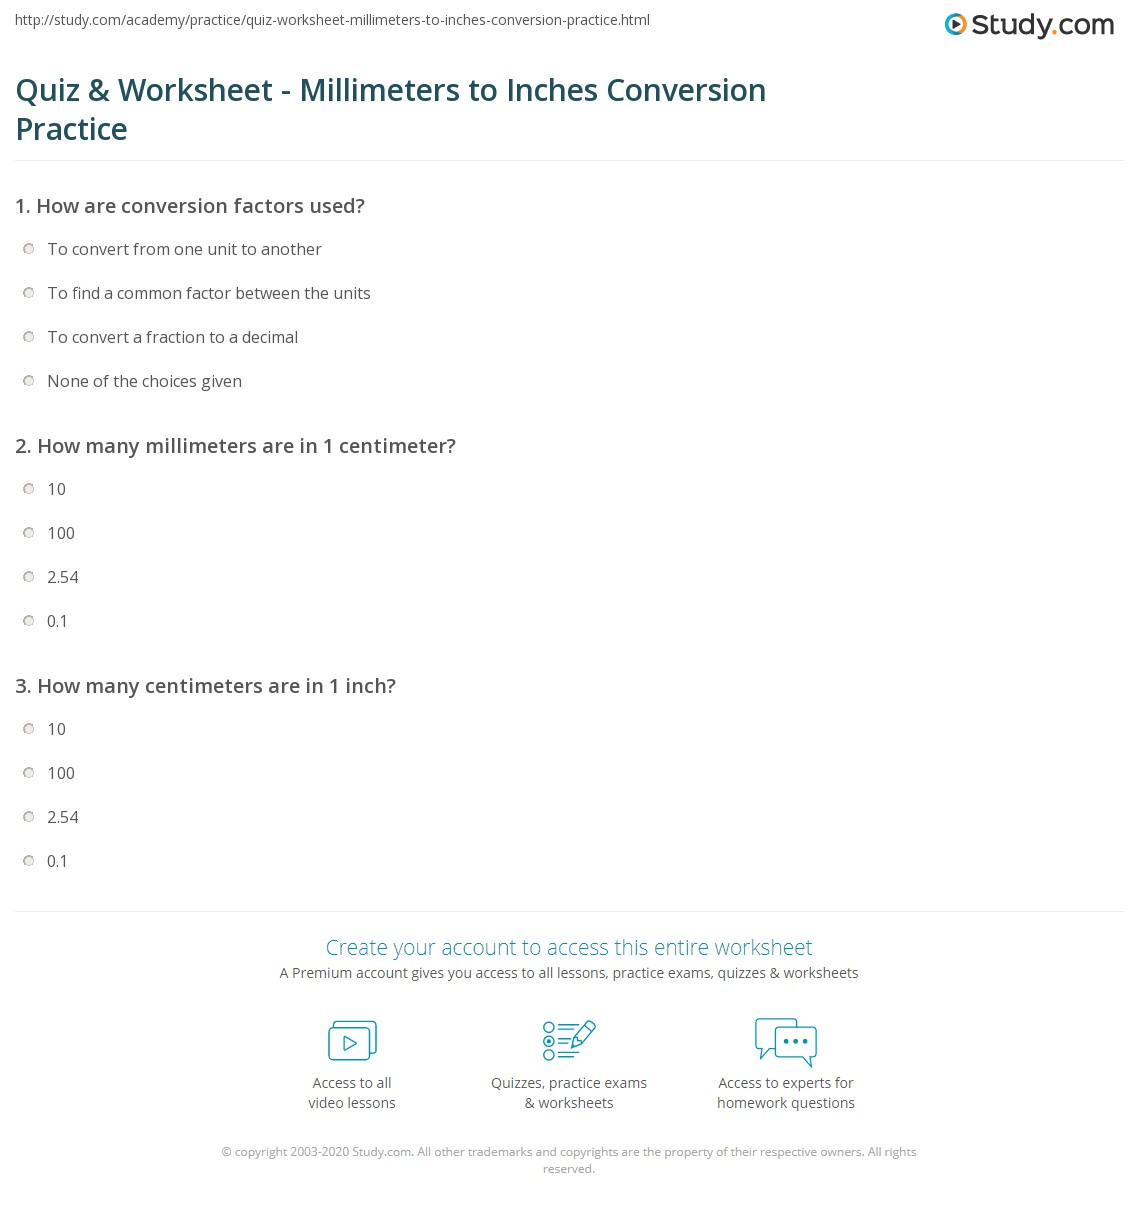 worksheet Conversion Practice Worksheet quiz worksheet millimeters to inches conversion practice print converting 5mm worksheet